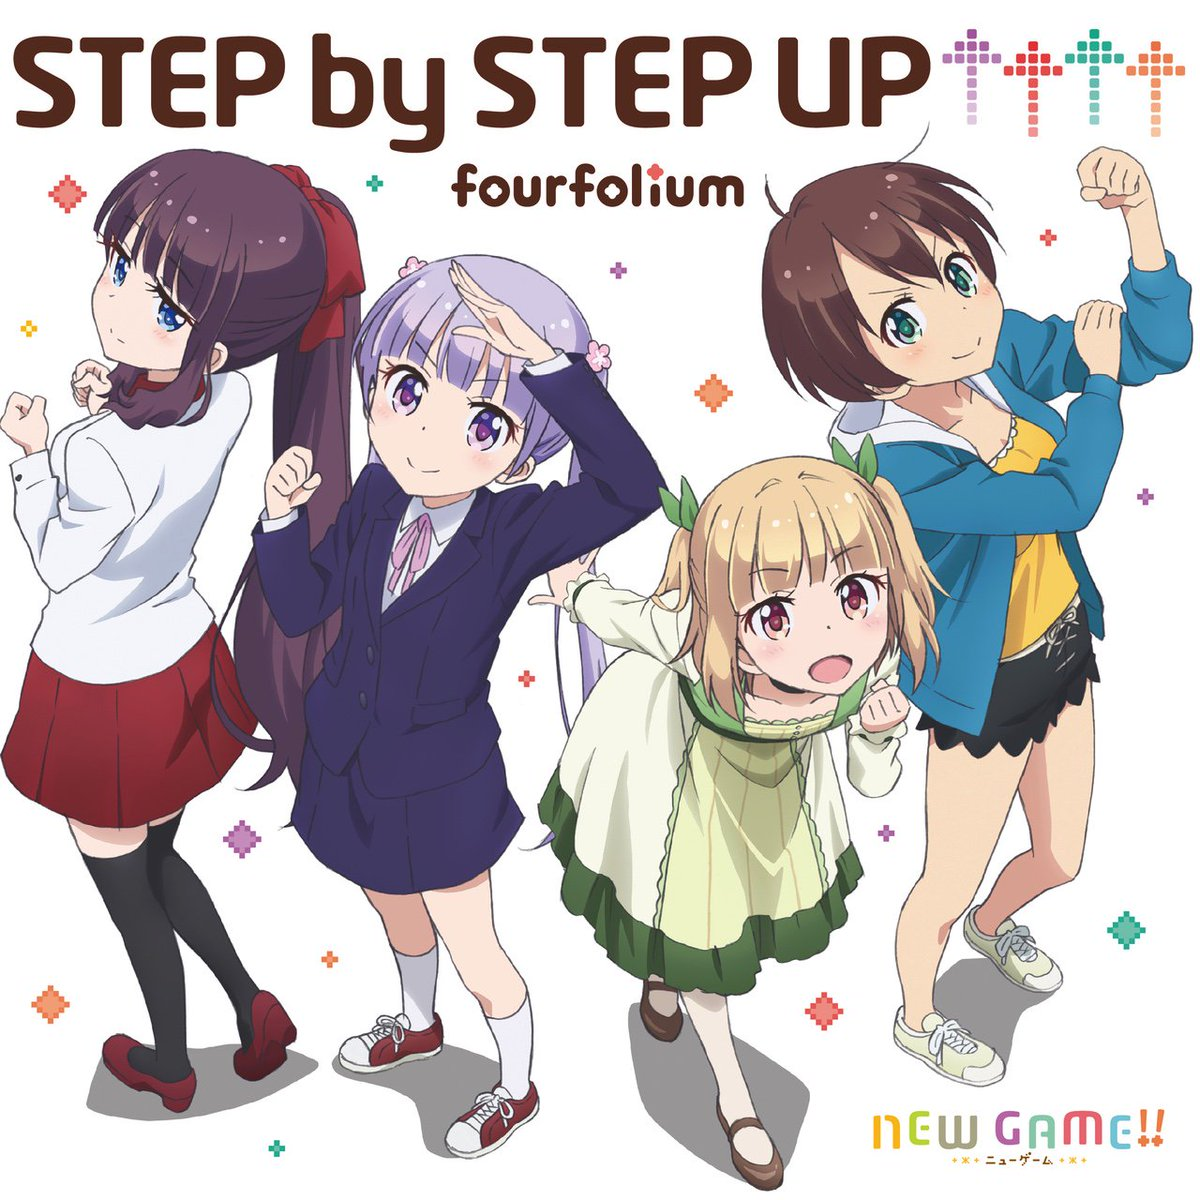 紅)STEP by STEP UP↑↑↑↑